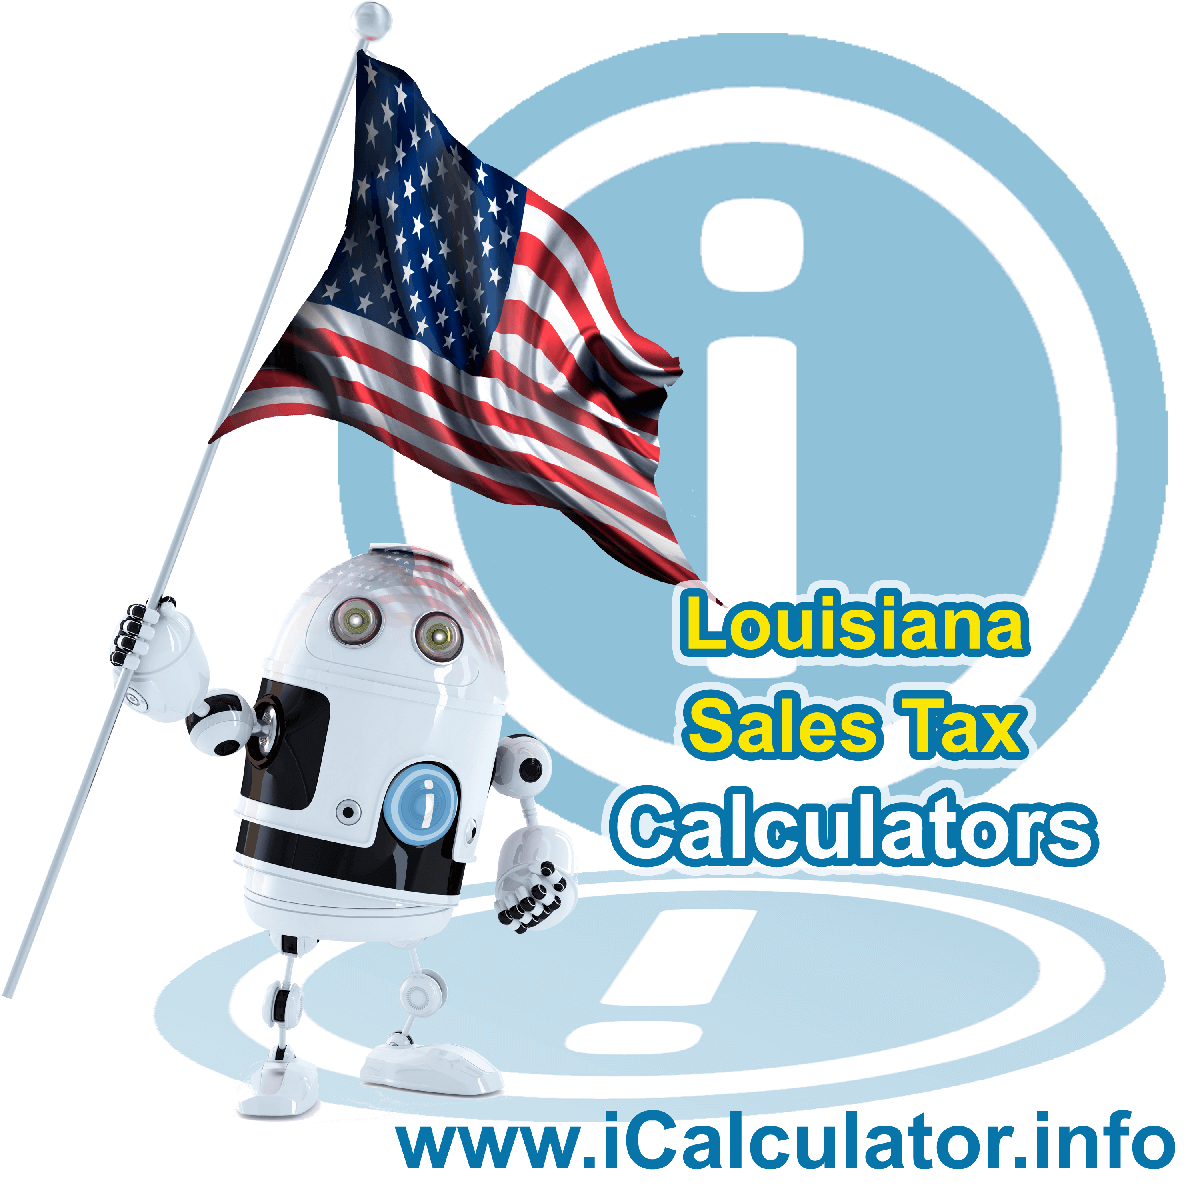 Hackberry Sales Rates: This image illustrates a calculator robot calculating Hackberry sales tax manually using the Hackberry Sales Tax Formula. You can use this information to calculate Hackberry Sales Tax manually or use the Hackberry Sales Tax Calculator to calculate sales tax online.